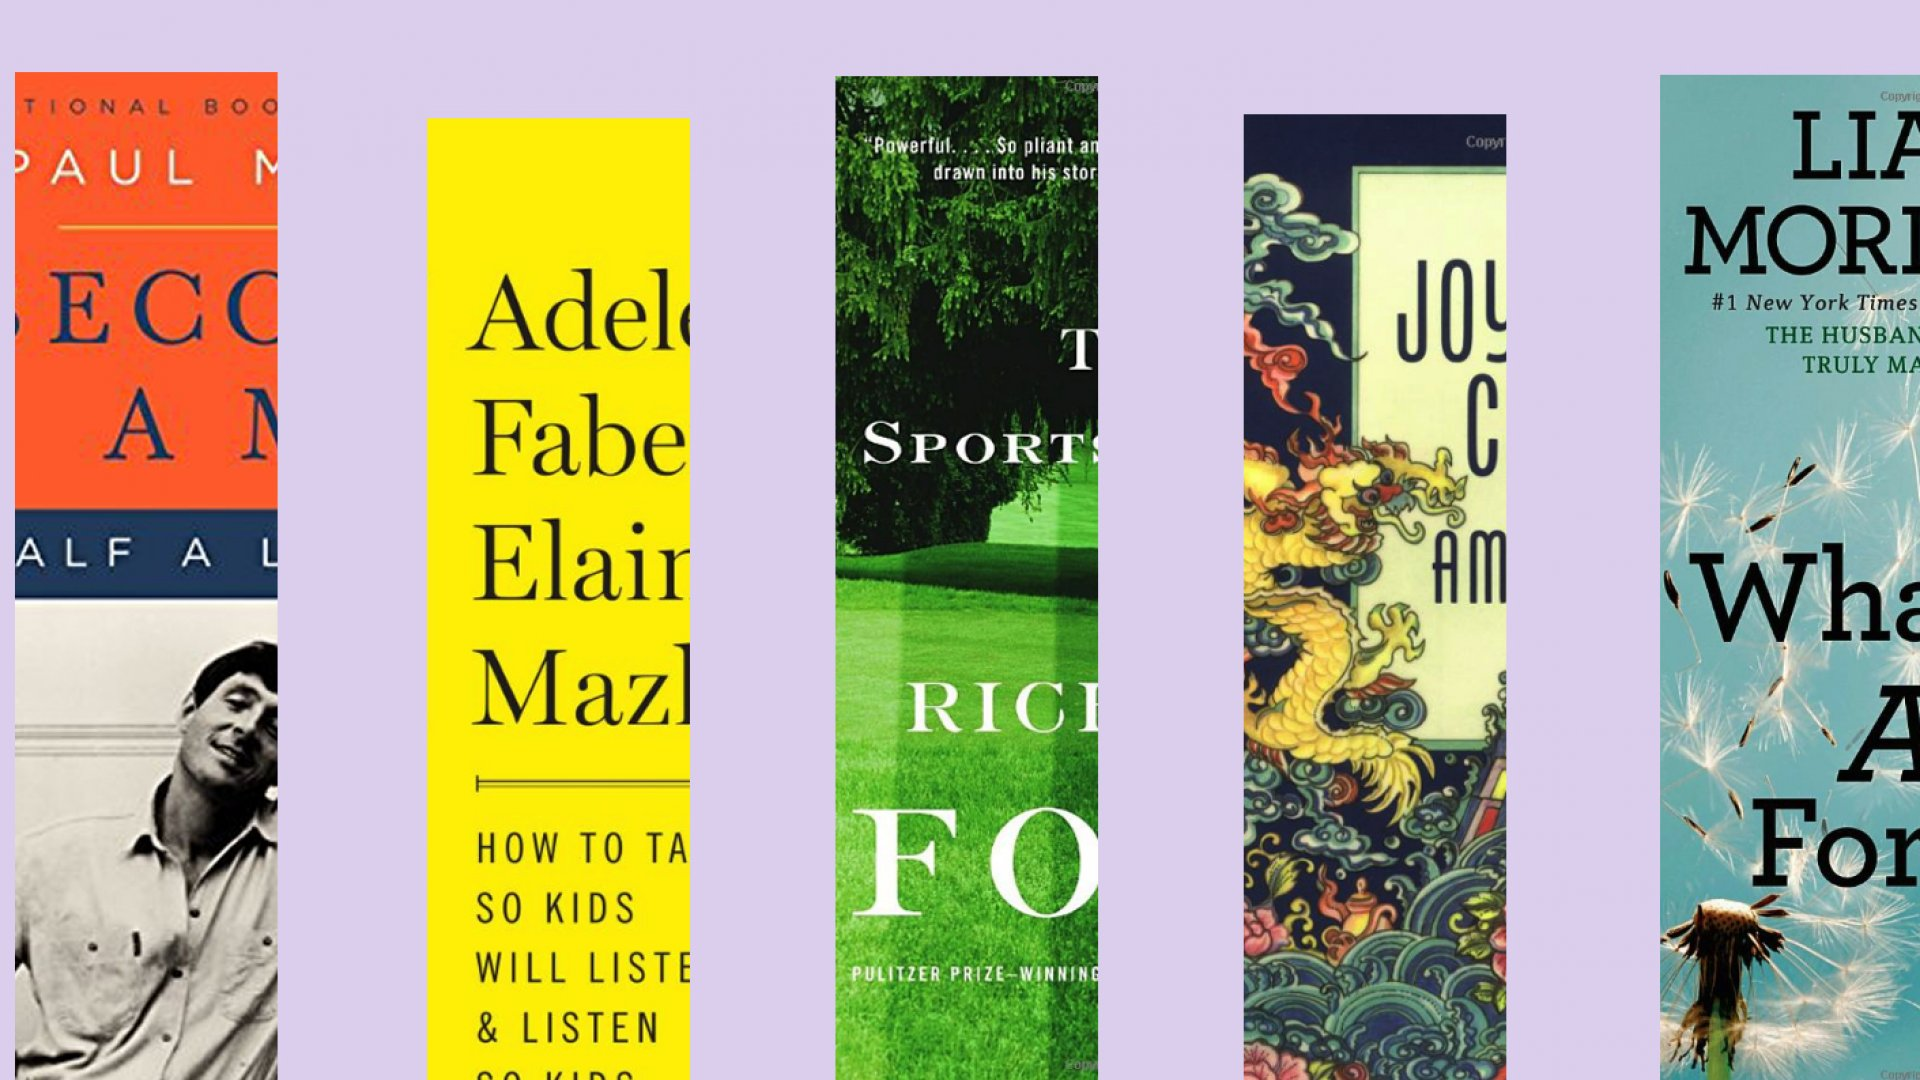 5 Books Everyone Should Read in Their 30s